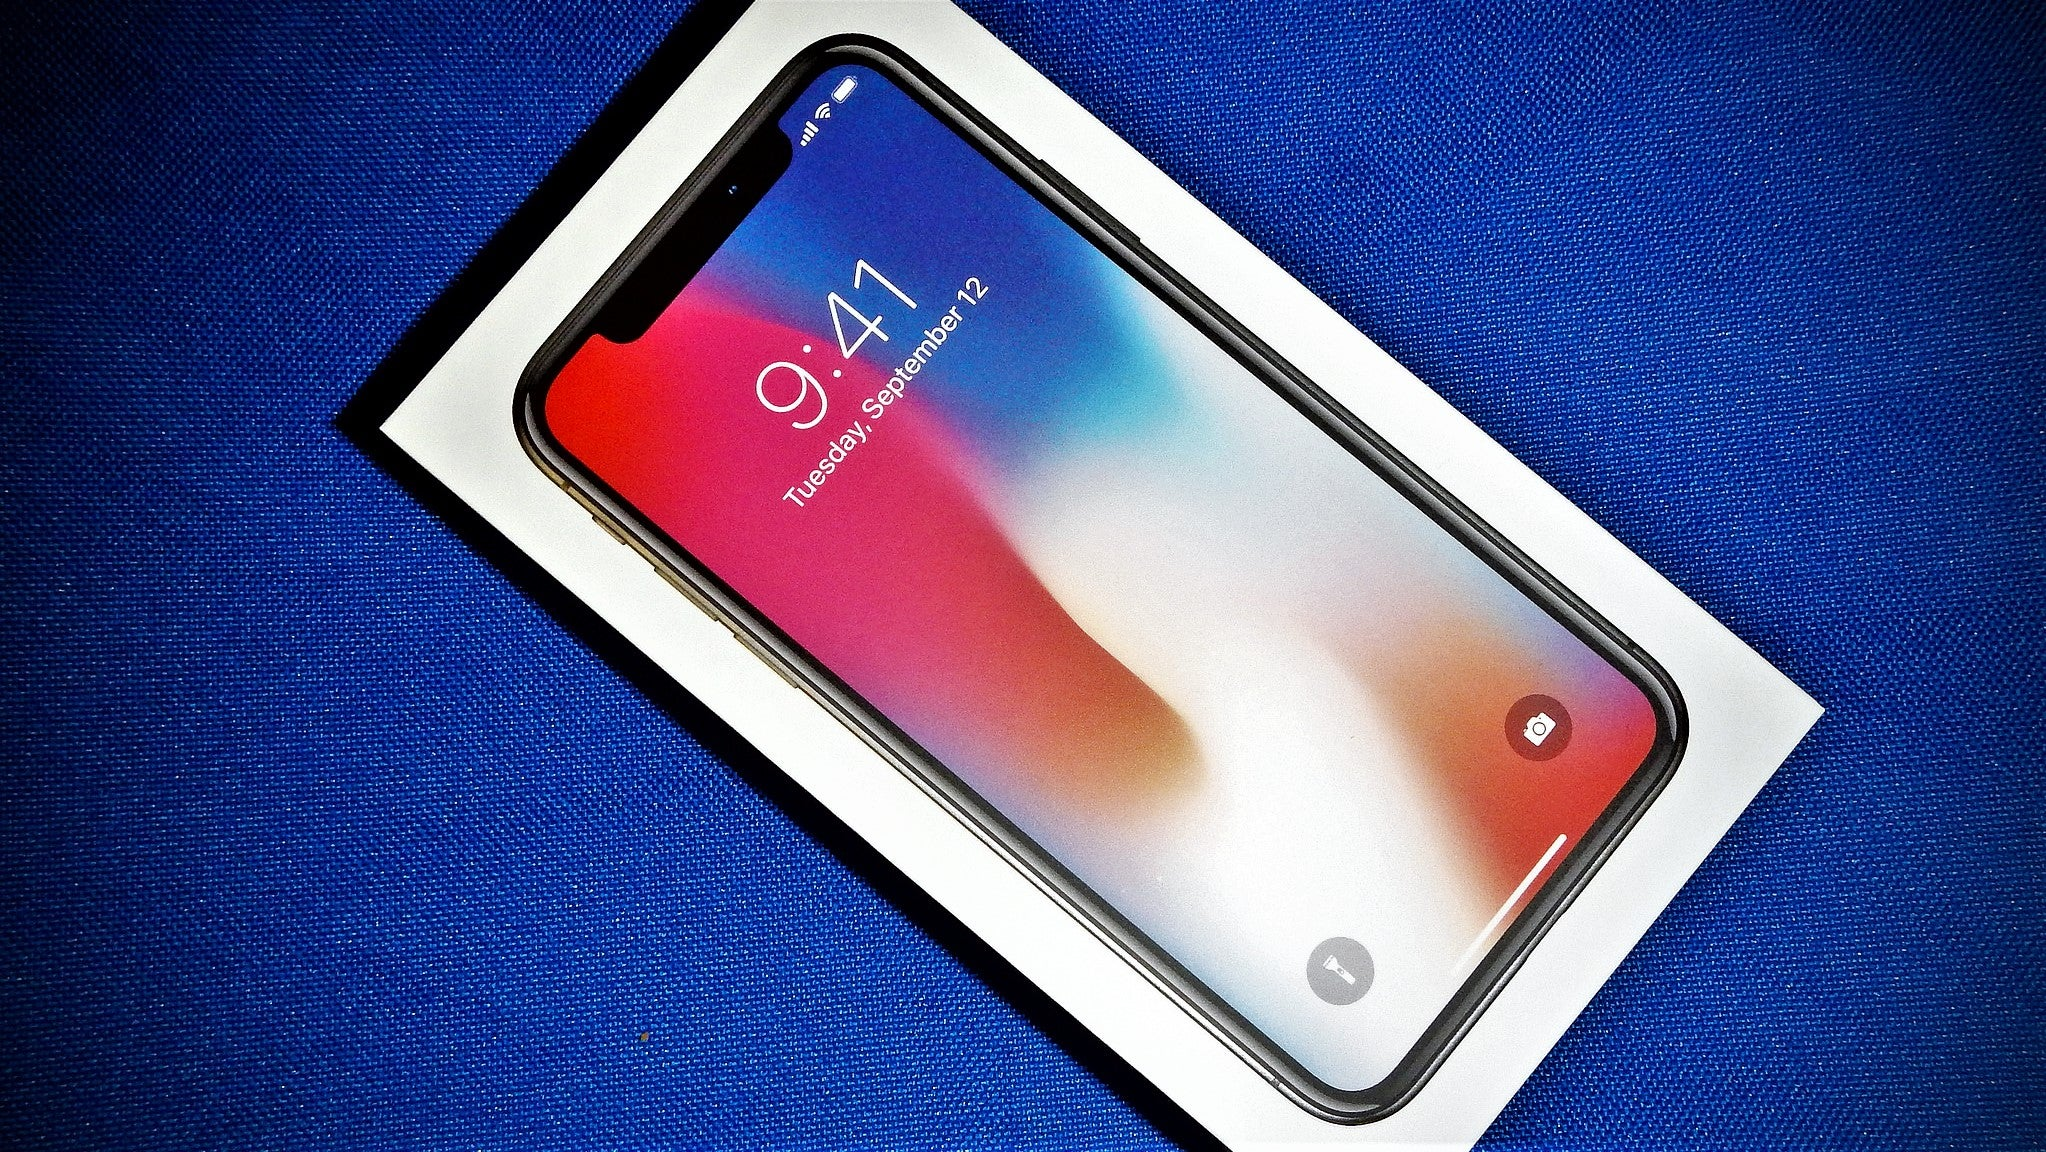 Get To Know Your IPhone X With This Handy User Manual